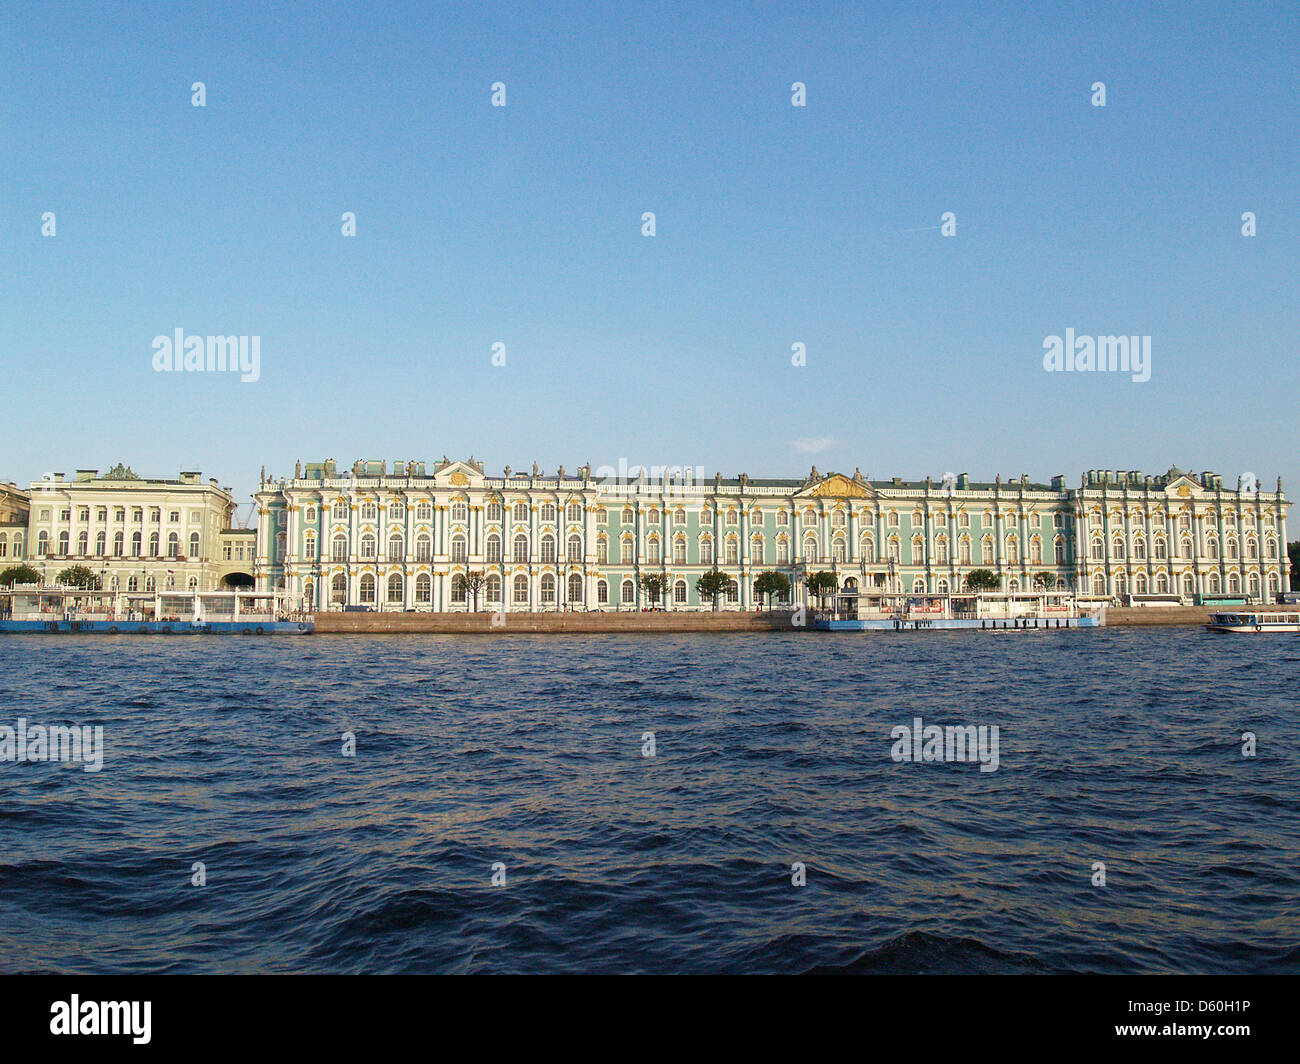 The Hermitage Museum from the Neva River,St.Petersburg - Stock Image